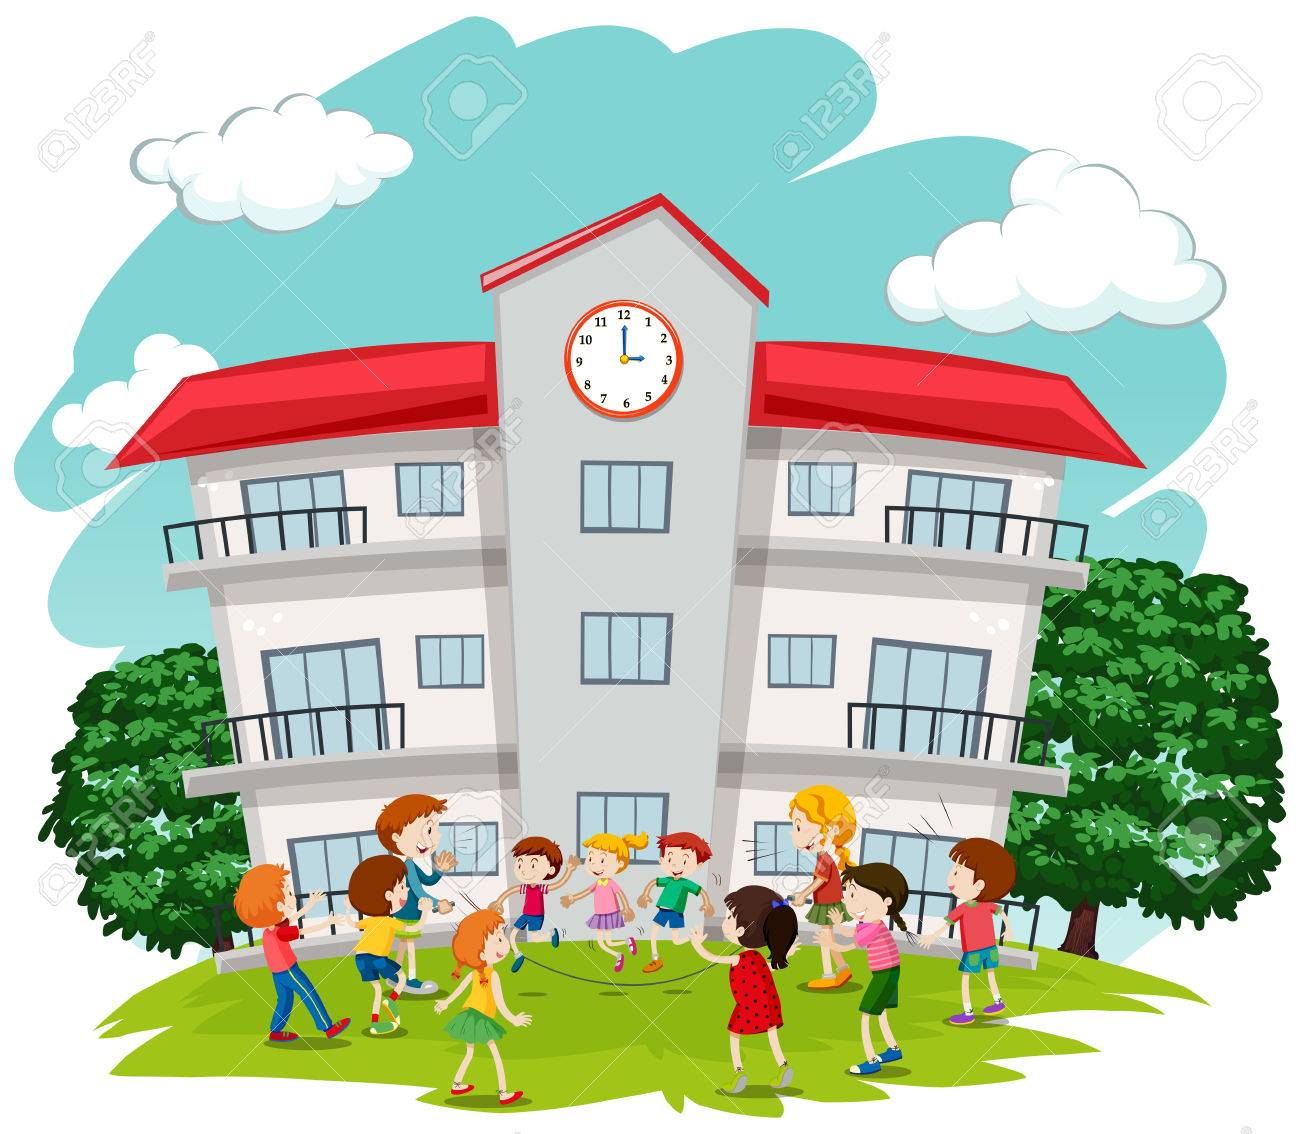 Children Playing In Front Of School Illustration Royalty Free Cliparts Vectors And Stock Illustration Image 61179912